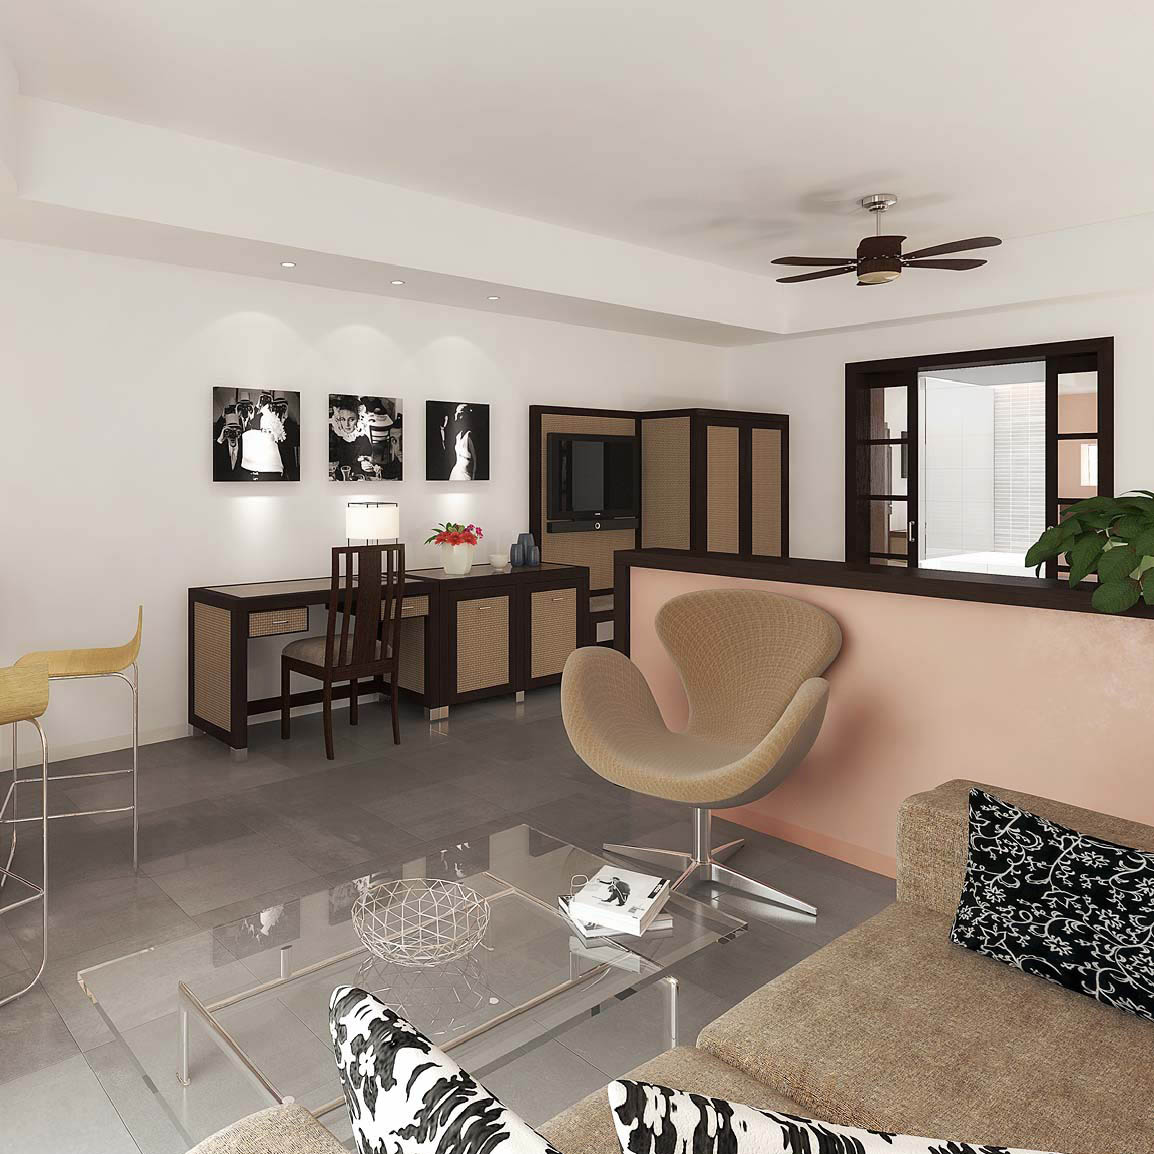 Architectural rendering 3d interior renderings of the for Designhotel lanzarote